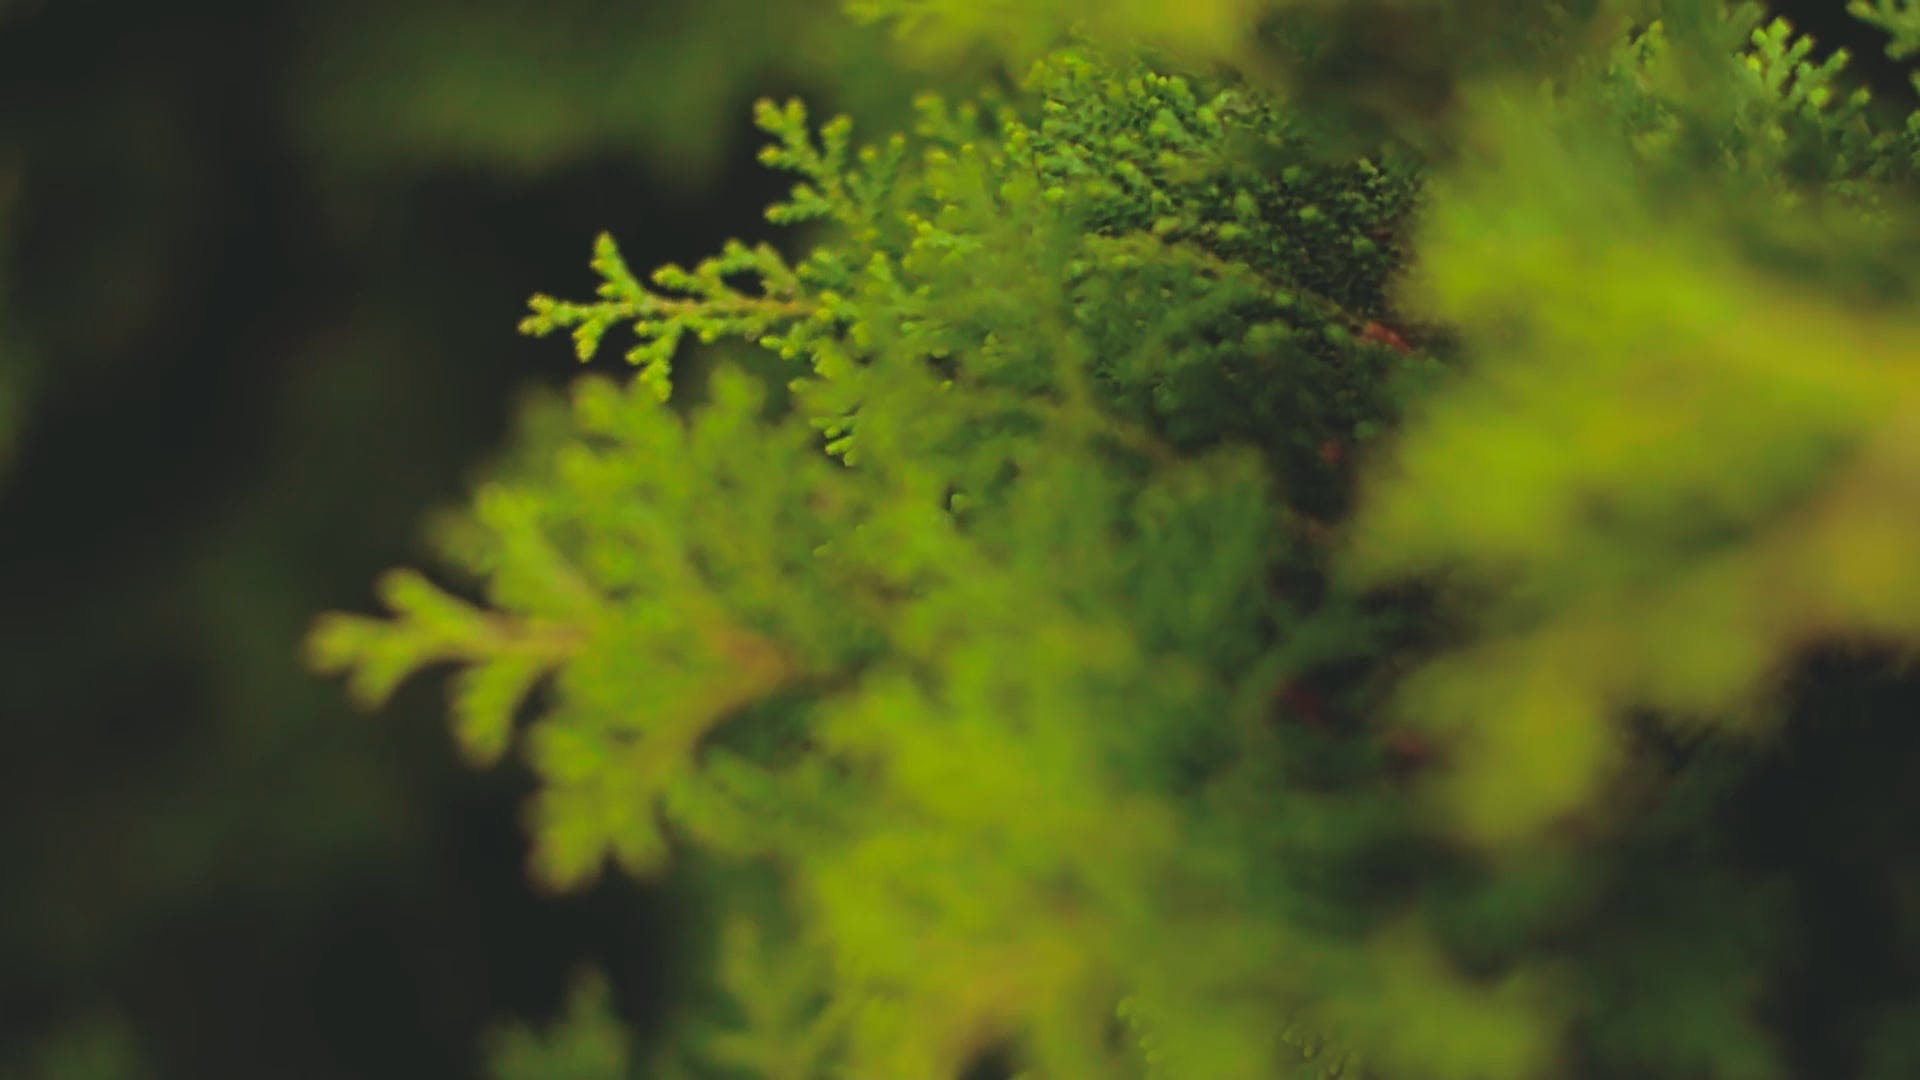 Pine Leaves In Close View